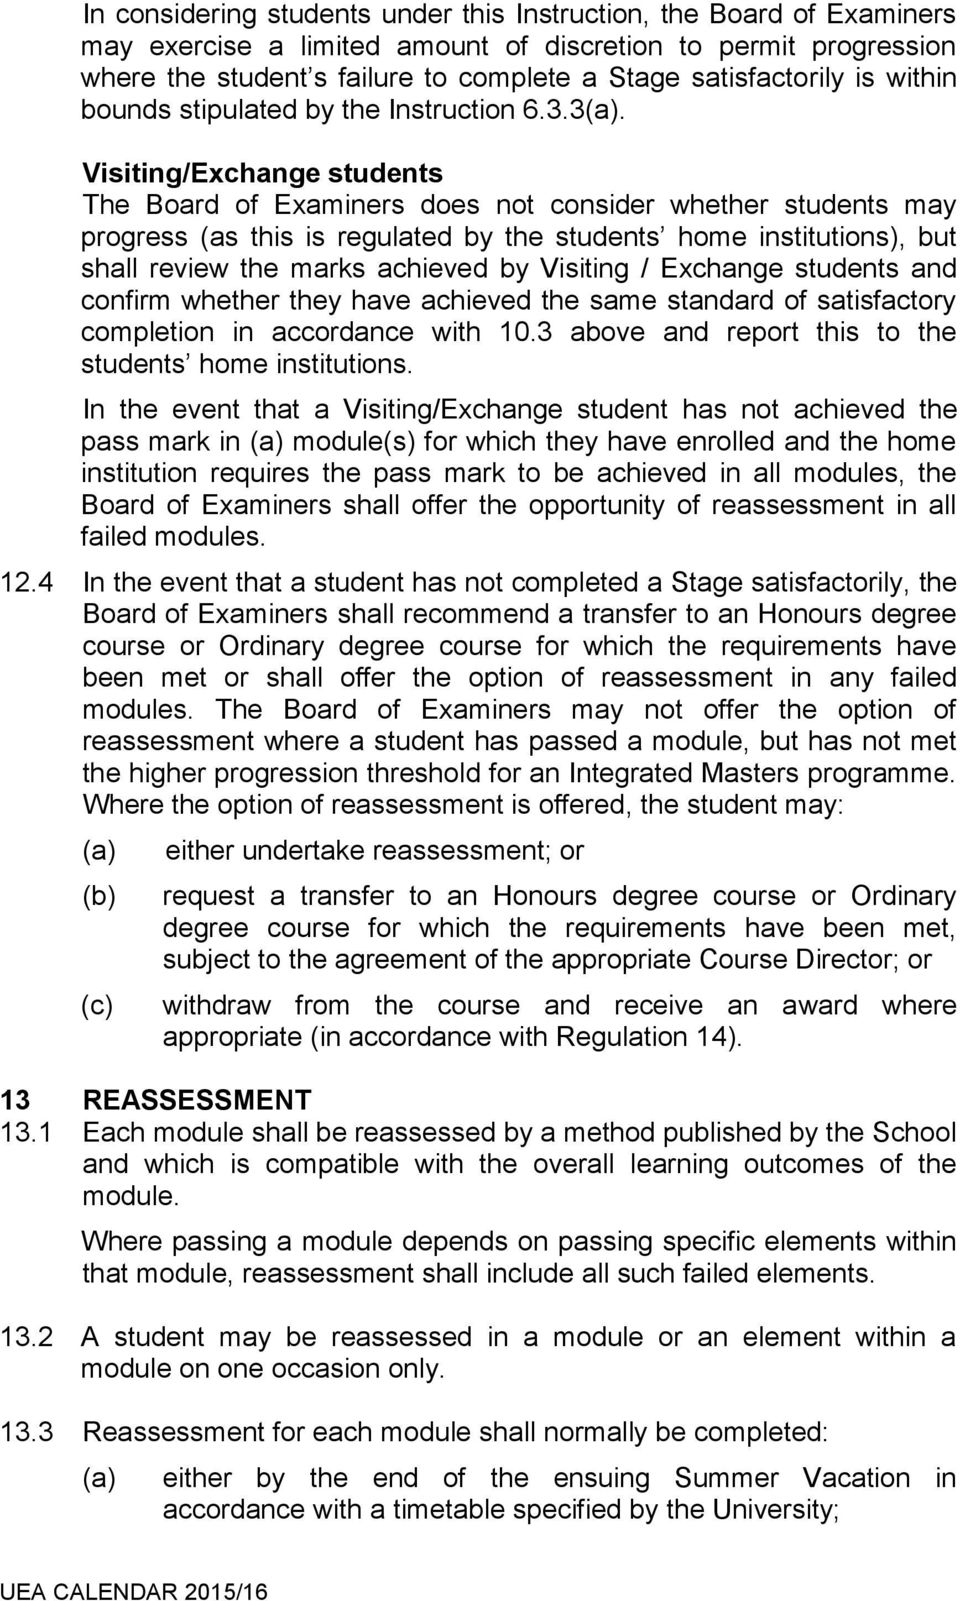 3. Visiting/Exchange students The Board of Examiners does not consider whether students may progress (as this is regulated by the students home institutions), but shall review the marks achieved by